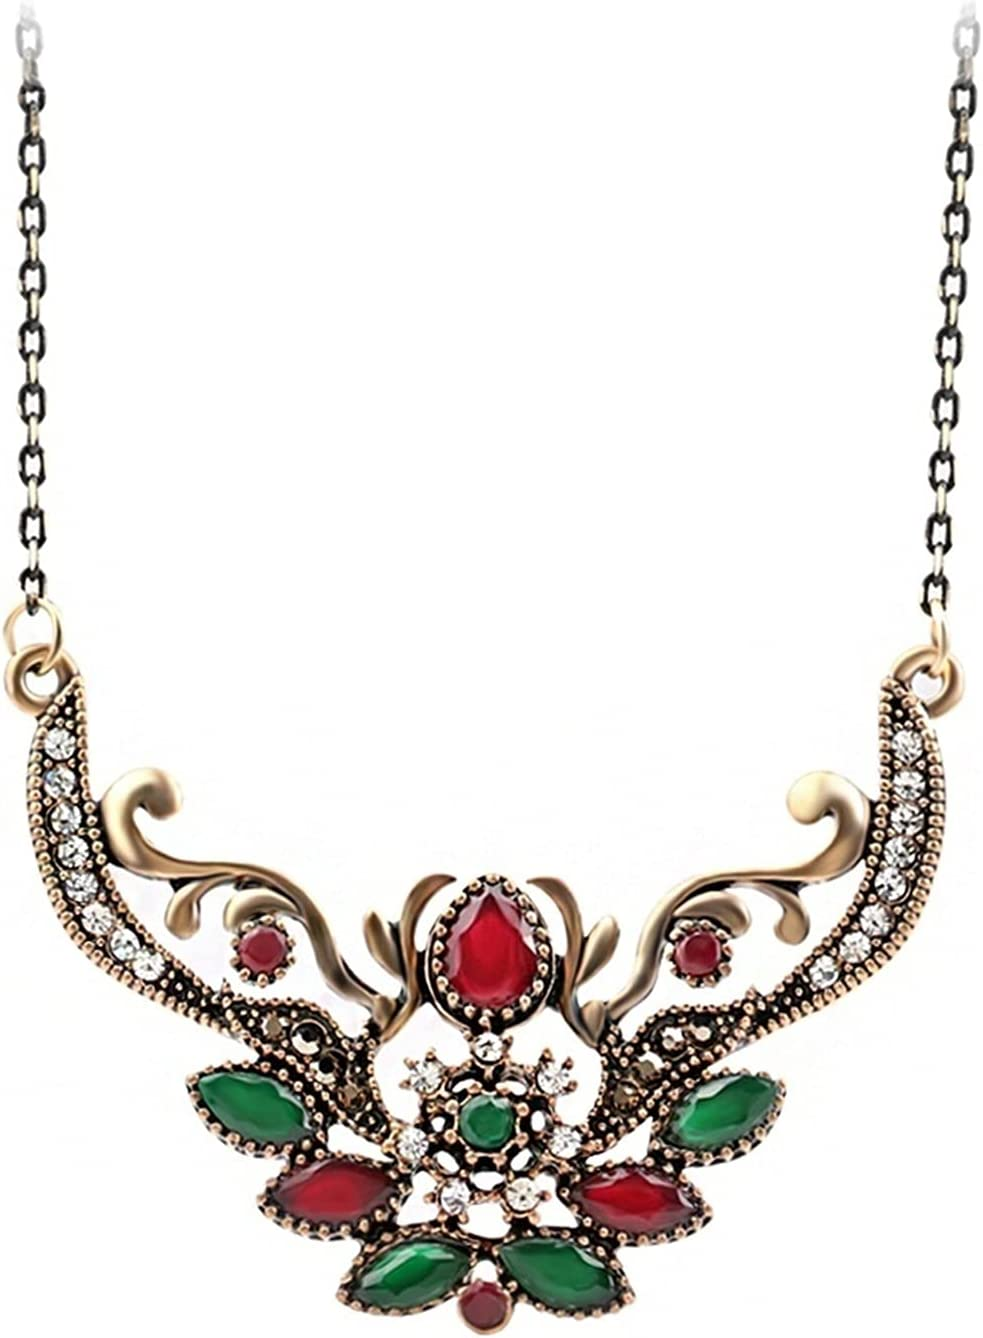 JIAF Necklace Vintage Jewelry Fashion Indian Pendant Necklace fo